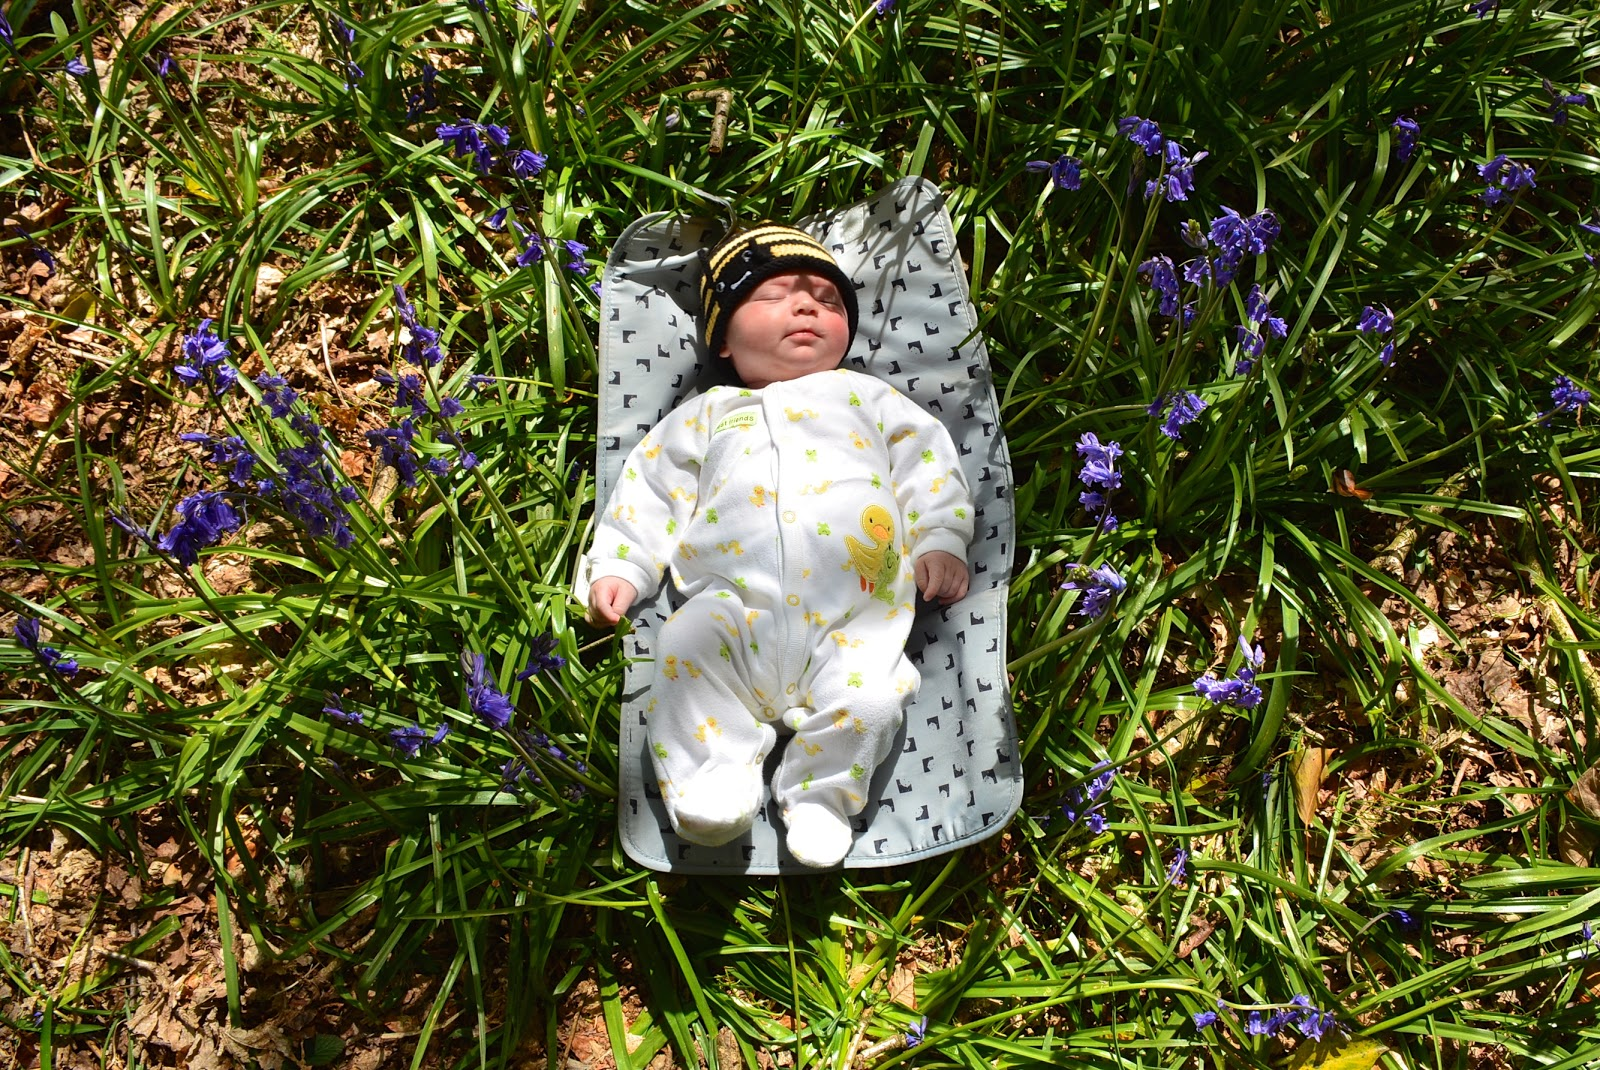 Napping in the Somerset bluebells